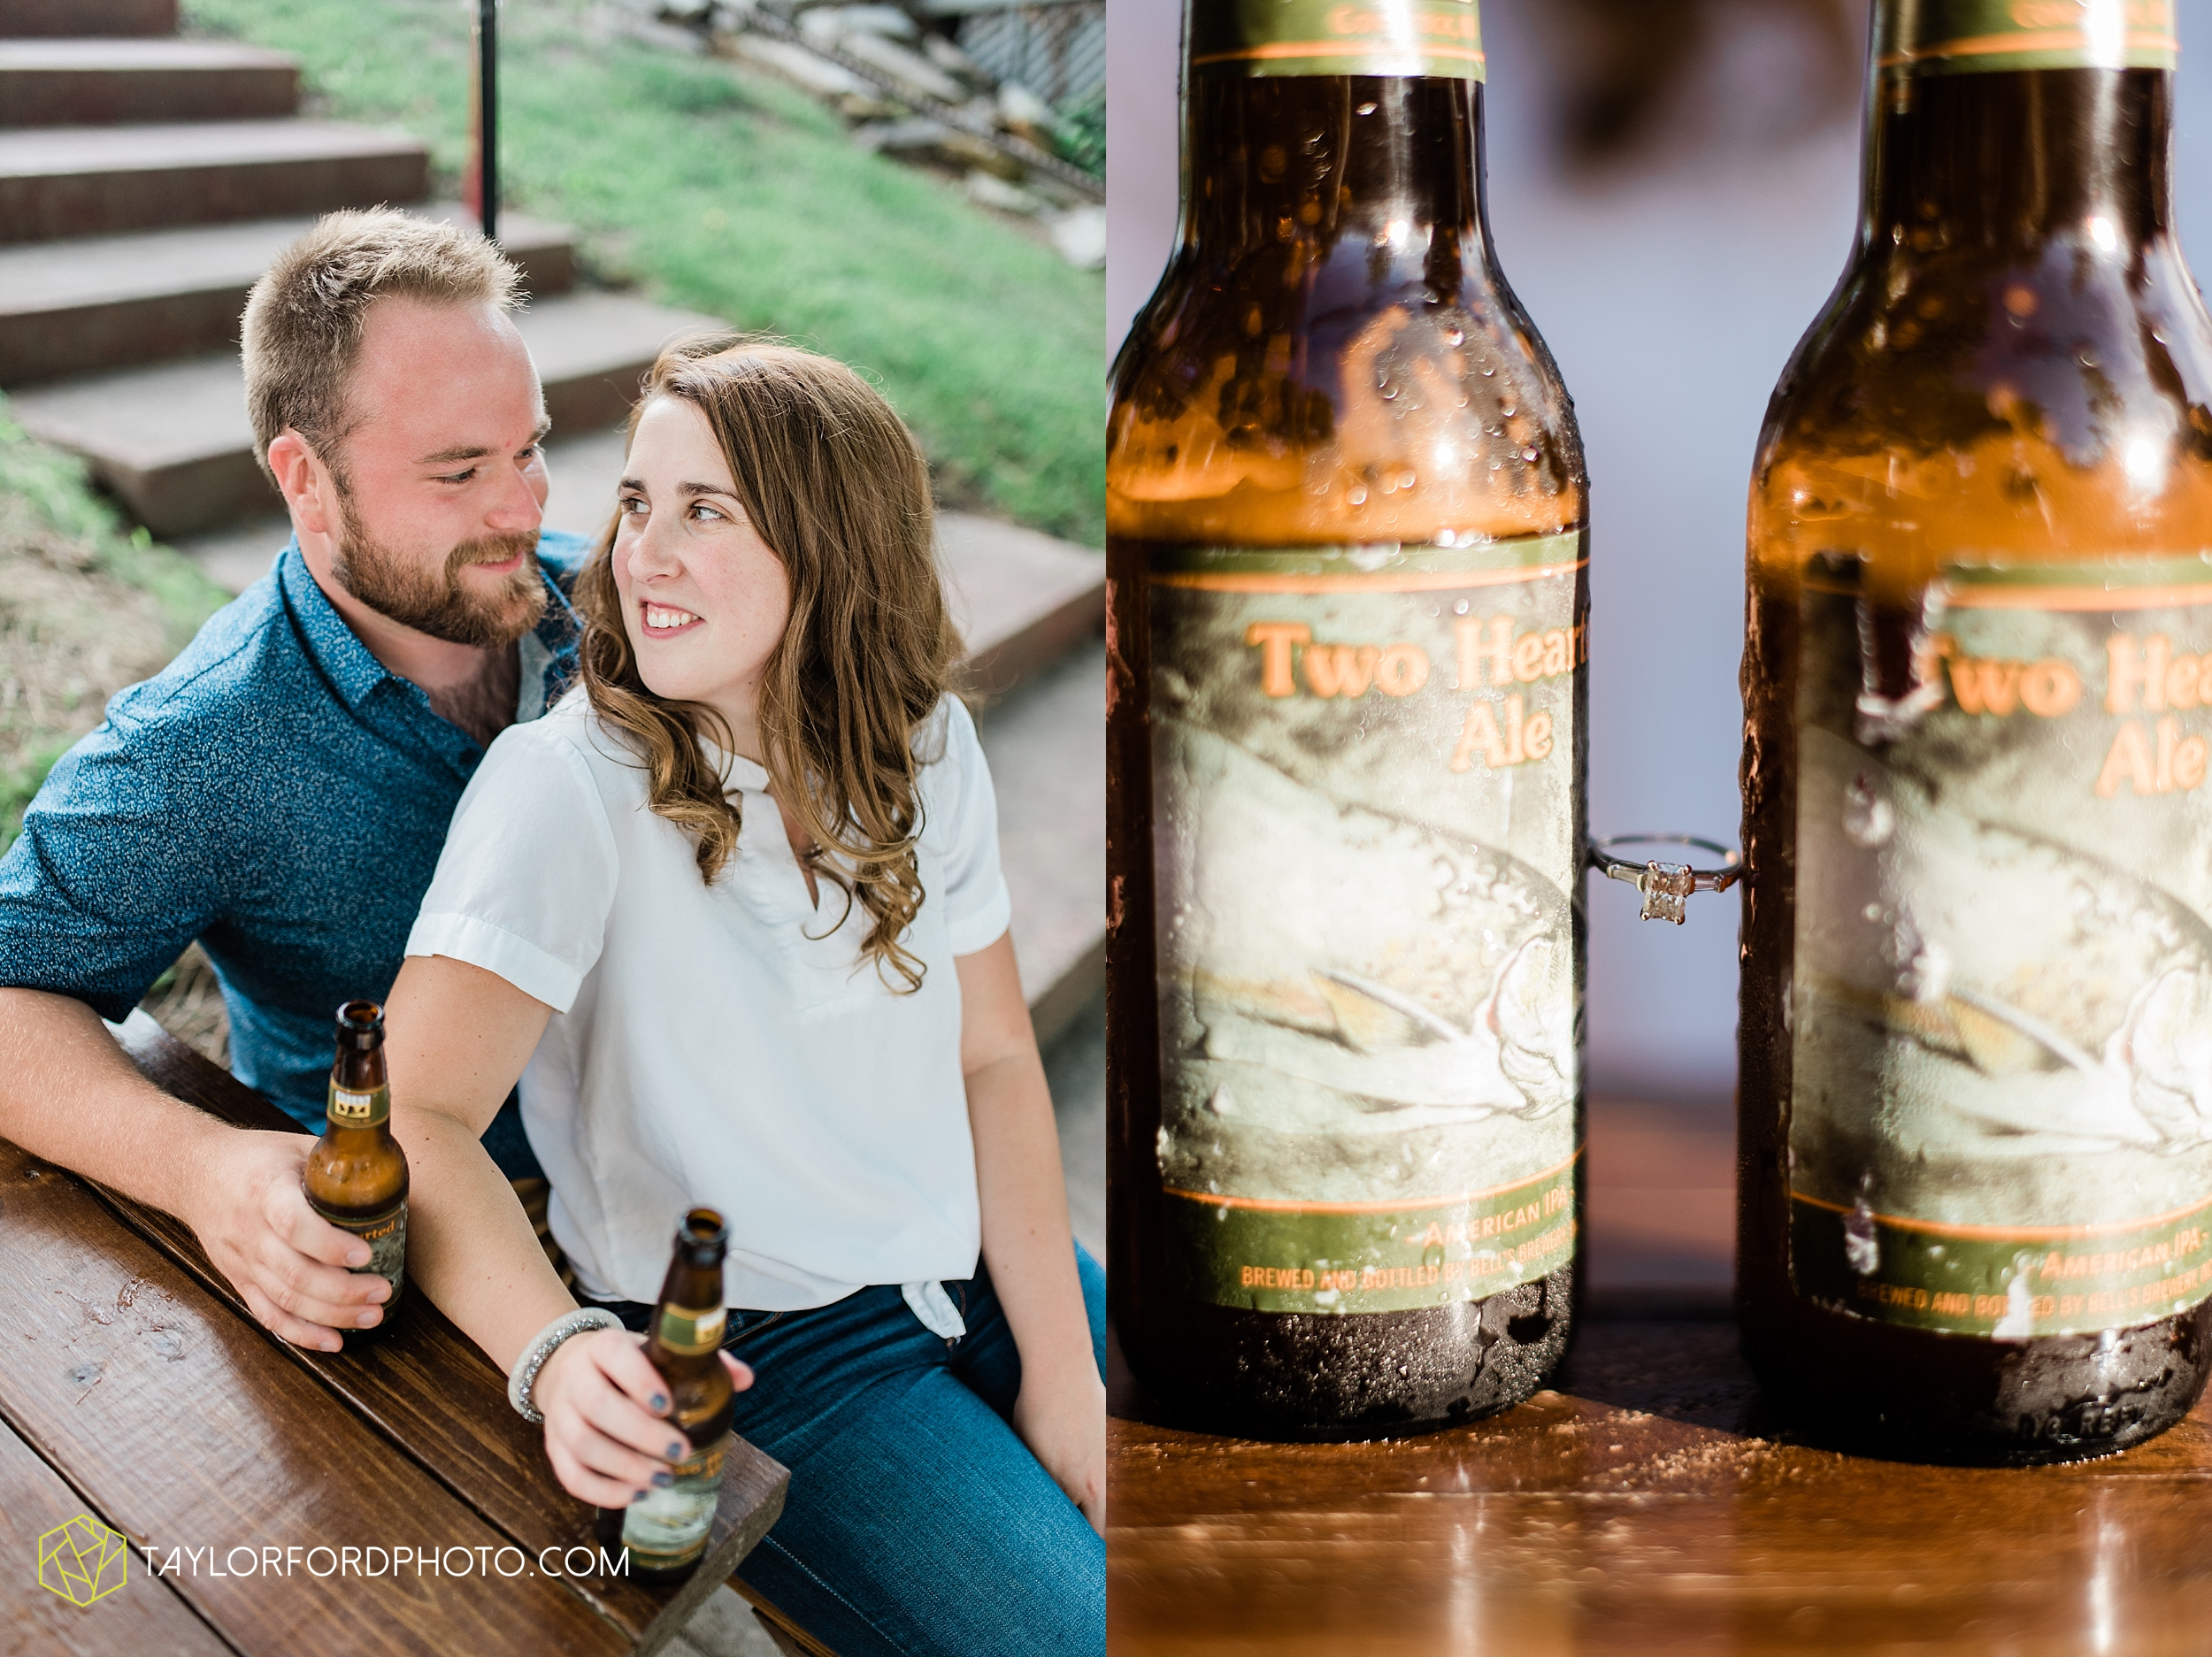 chelsey-jackson-young-downtown-fort-wayne-indiana-the-halls-deck-engagement-wedding-photographer-Taylor-Ford-Photography_8219.jpg